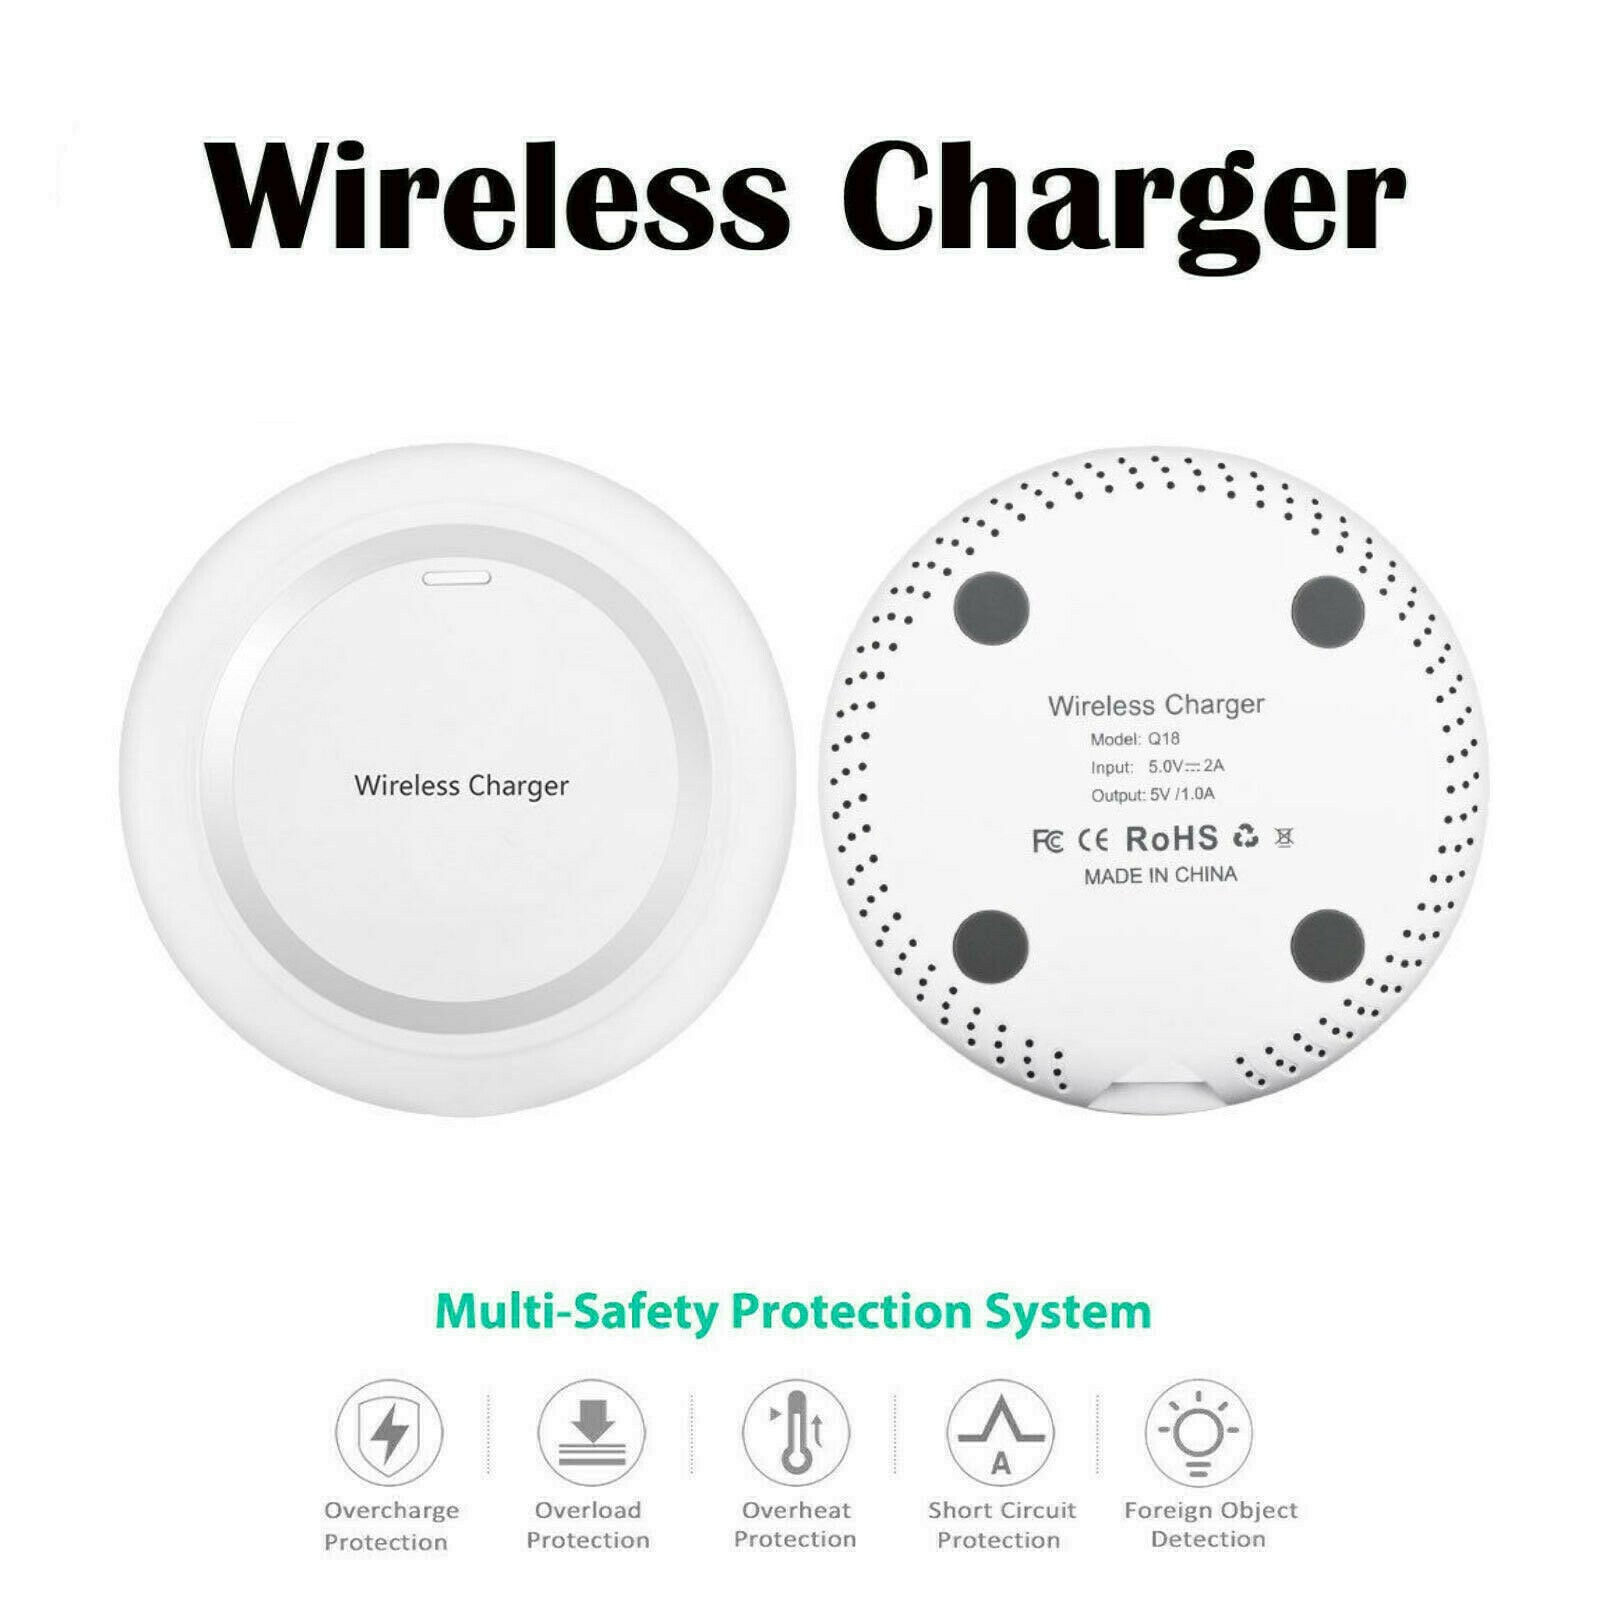 White Qi Wireless Battery Charger Pad for Apple iPhone 8 Plus X Desktop Charging by Stelcore